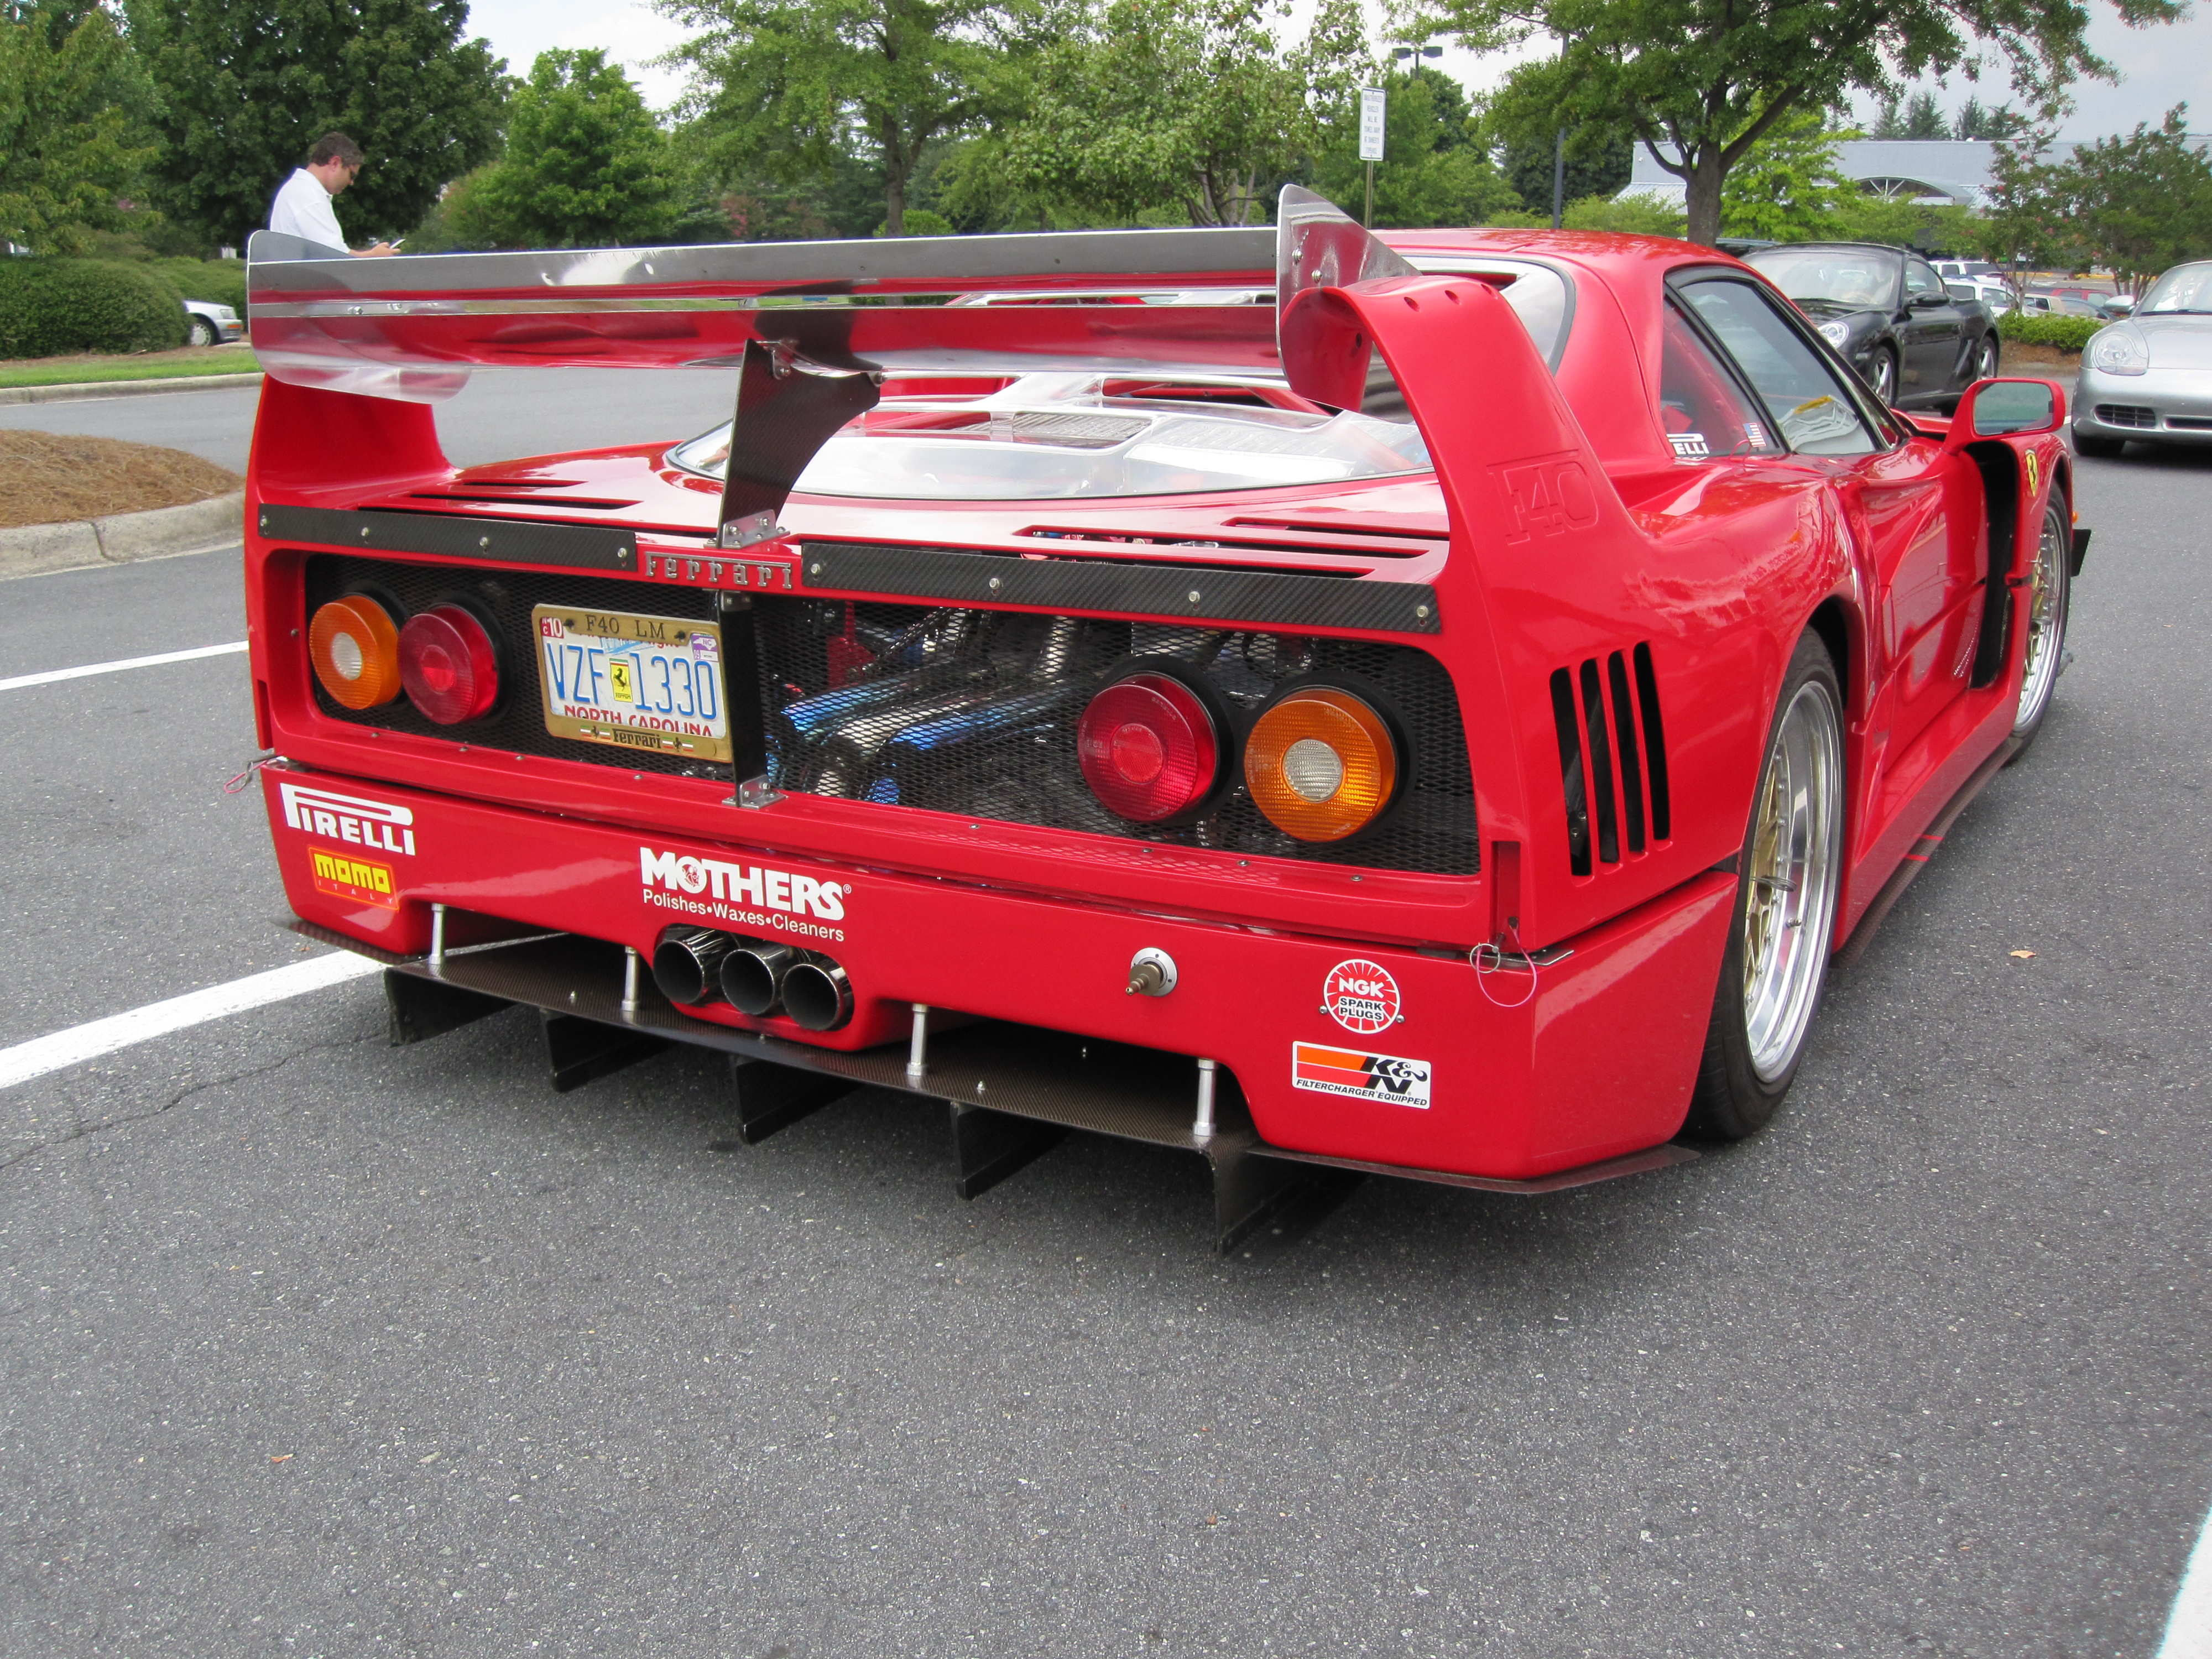 ... view picture of Ferrari F40, sports car, exaust system, sports f40